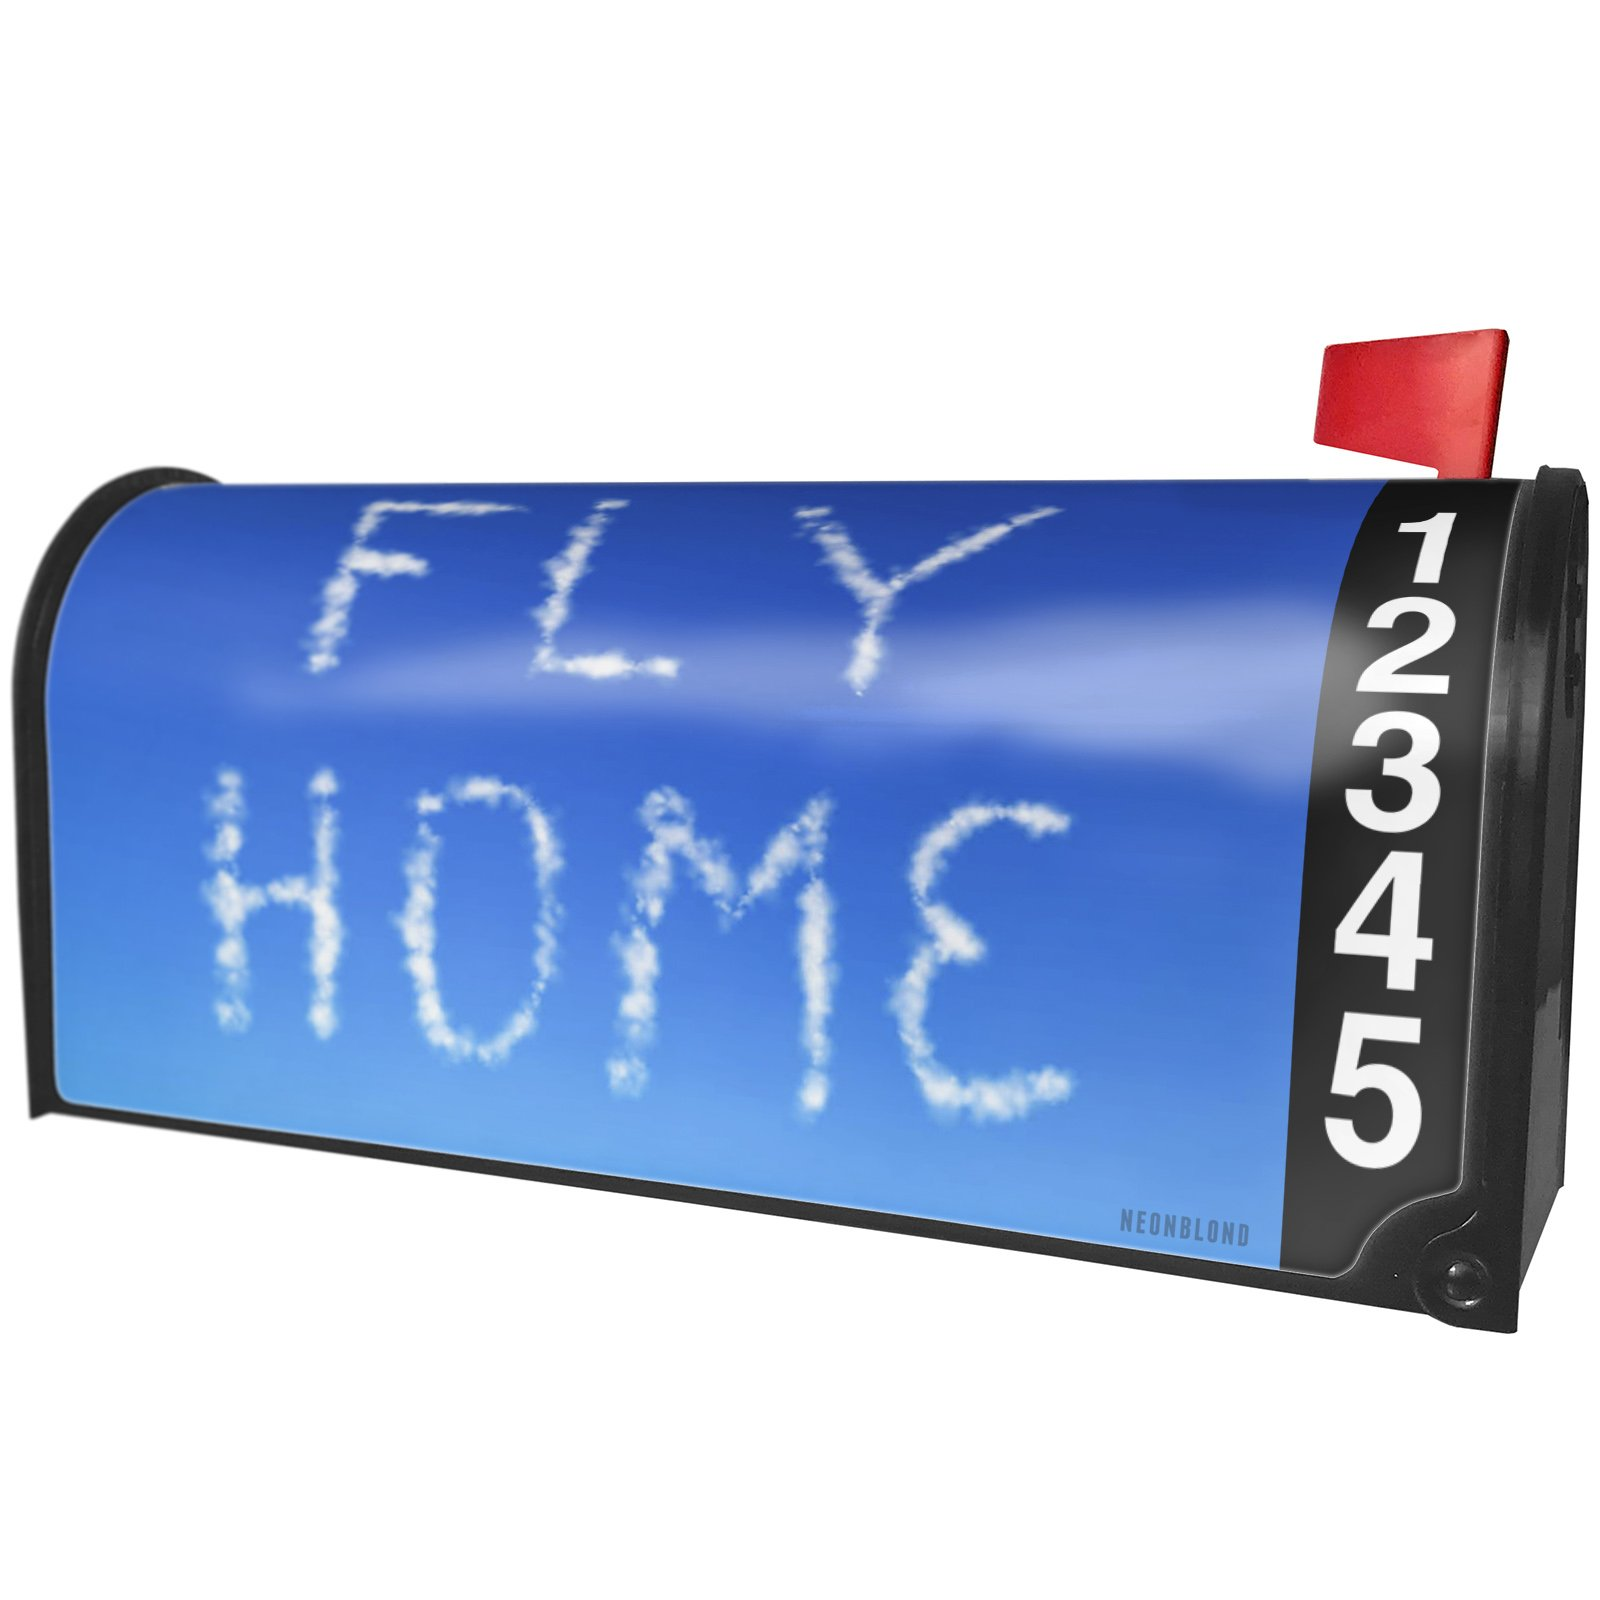 NEONBLOND Fly Home Clouds Fresh Air Magnetic Mailbox Cover Custom Numbers